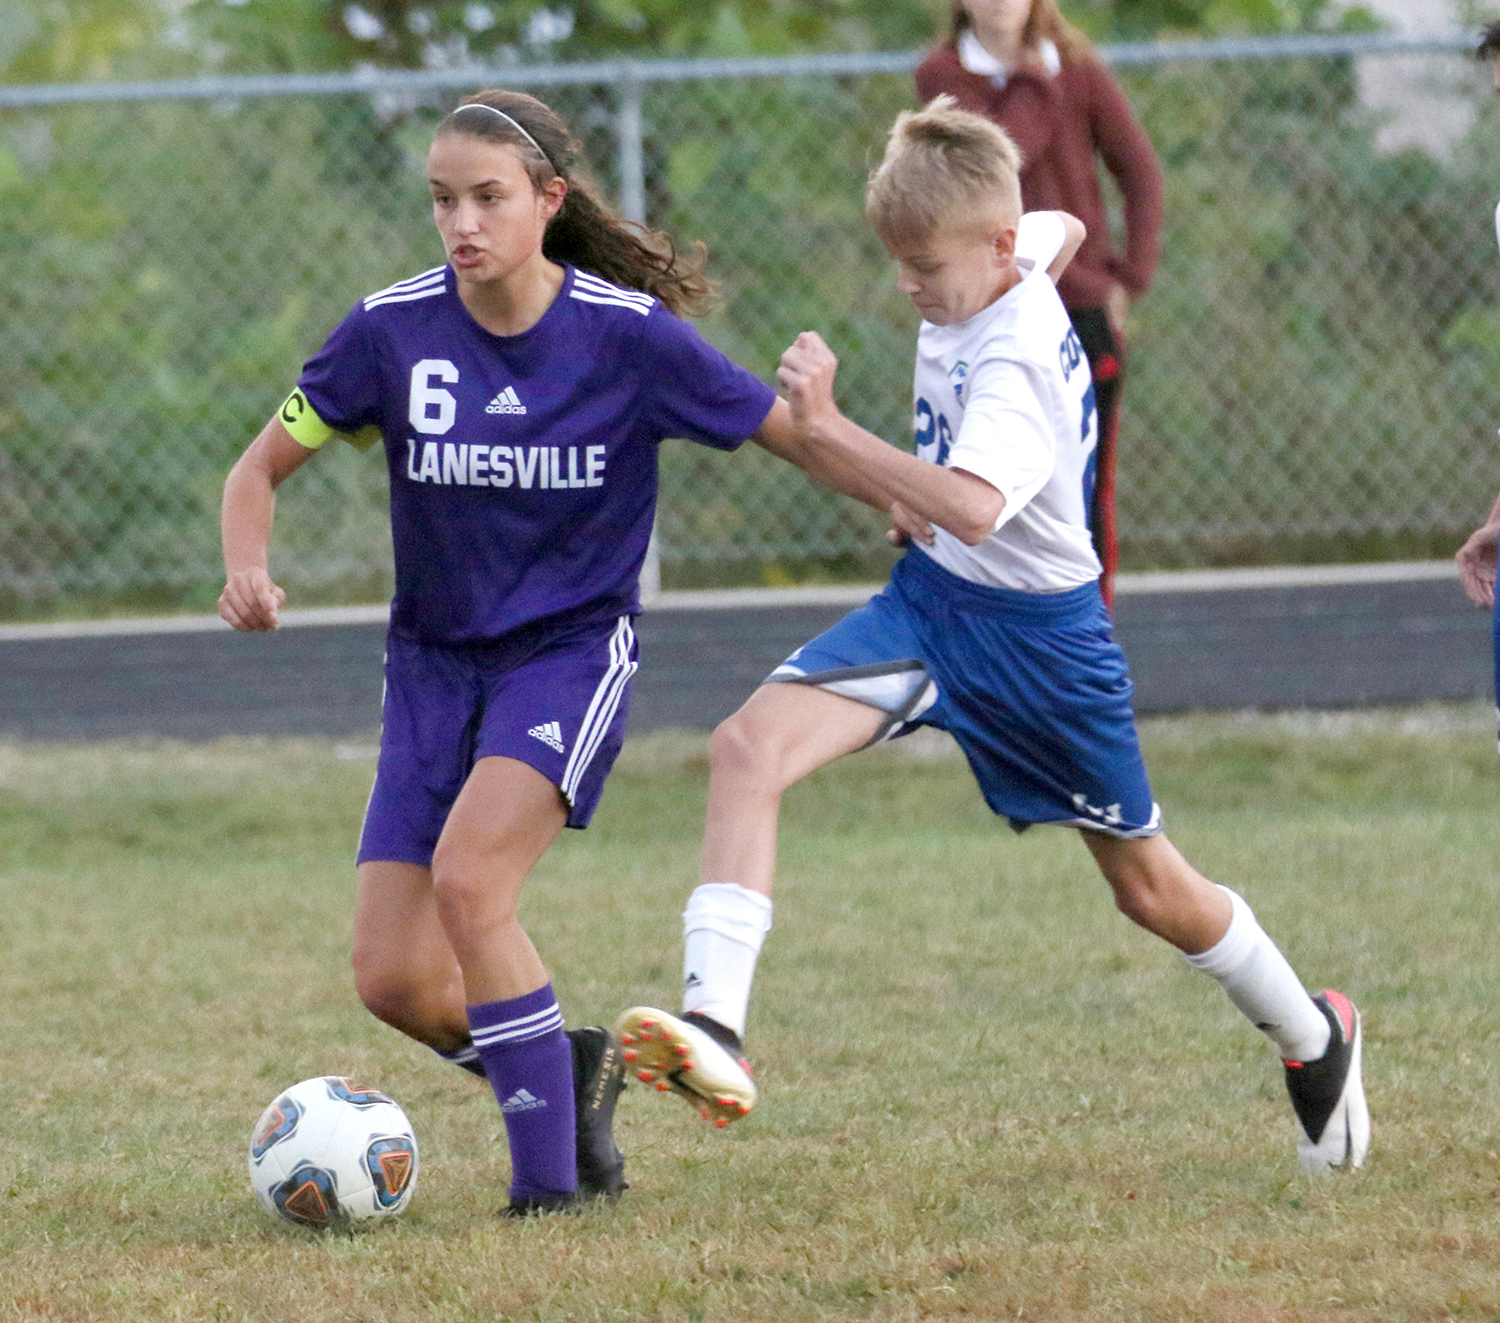 Cougars shut out Lanesville